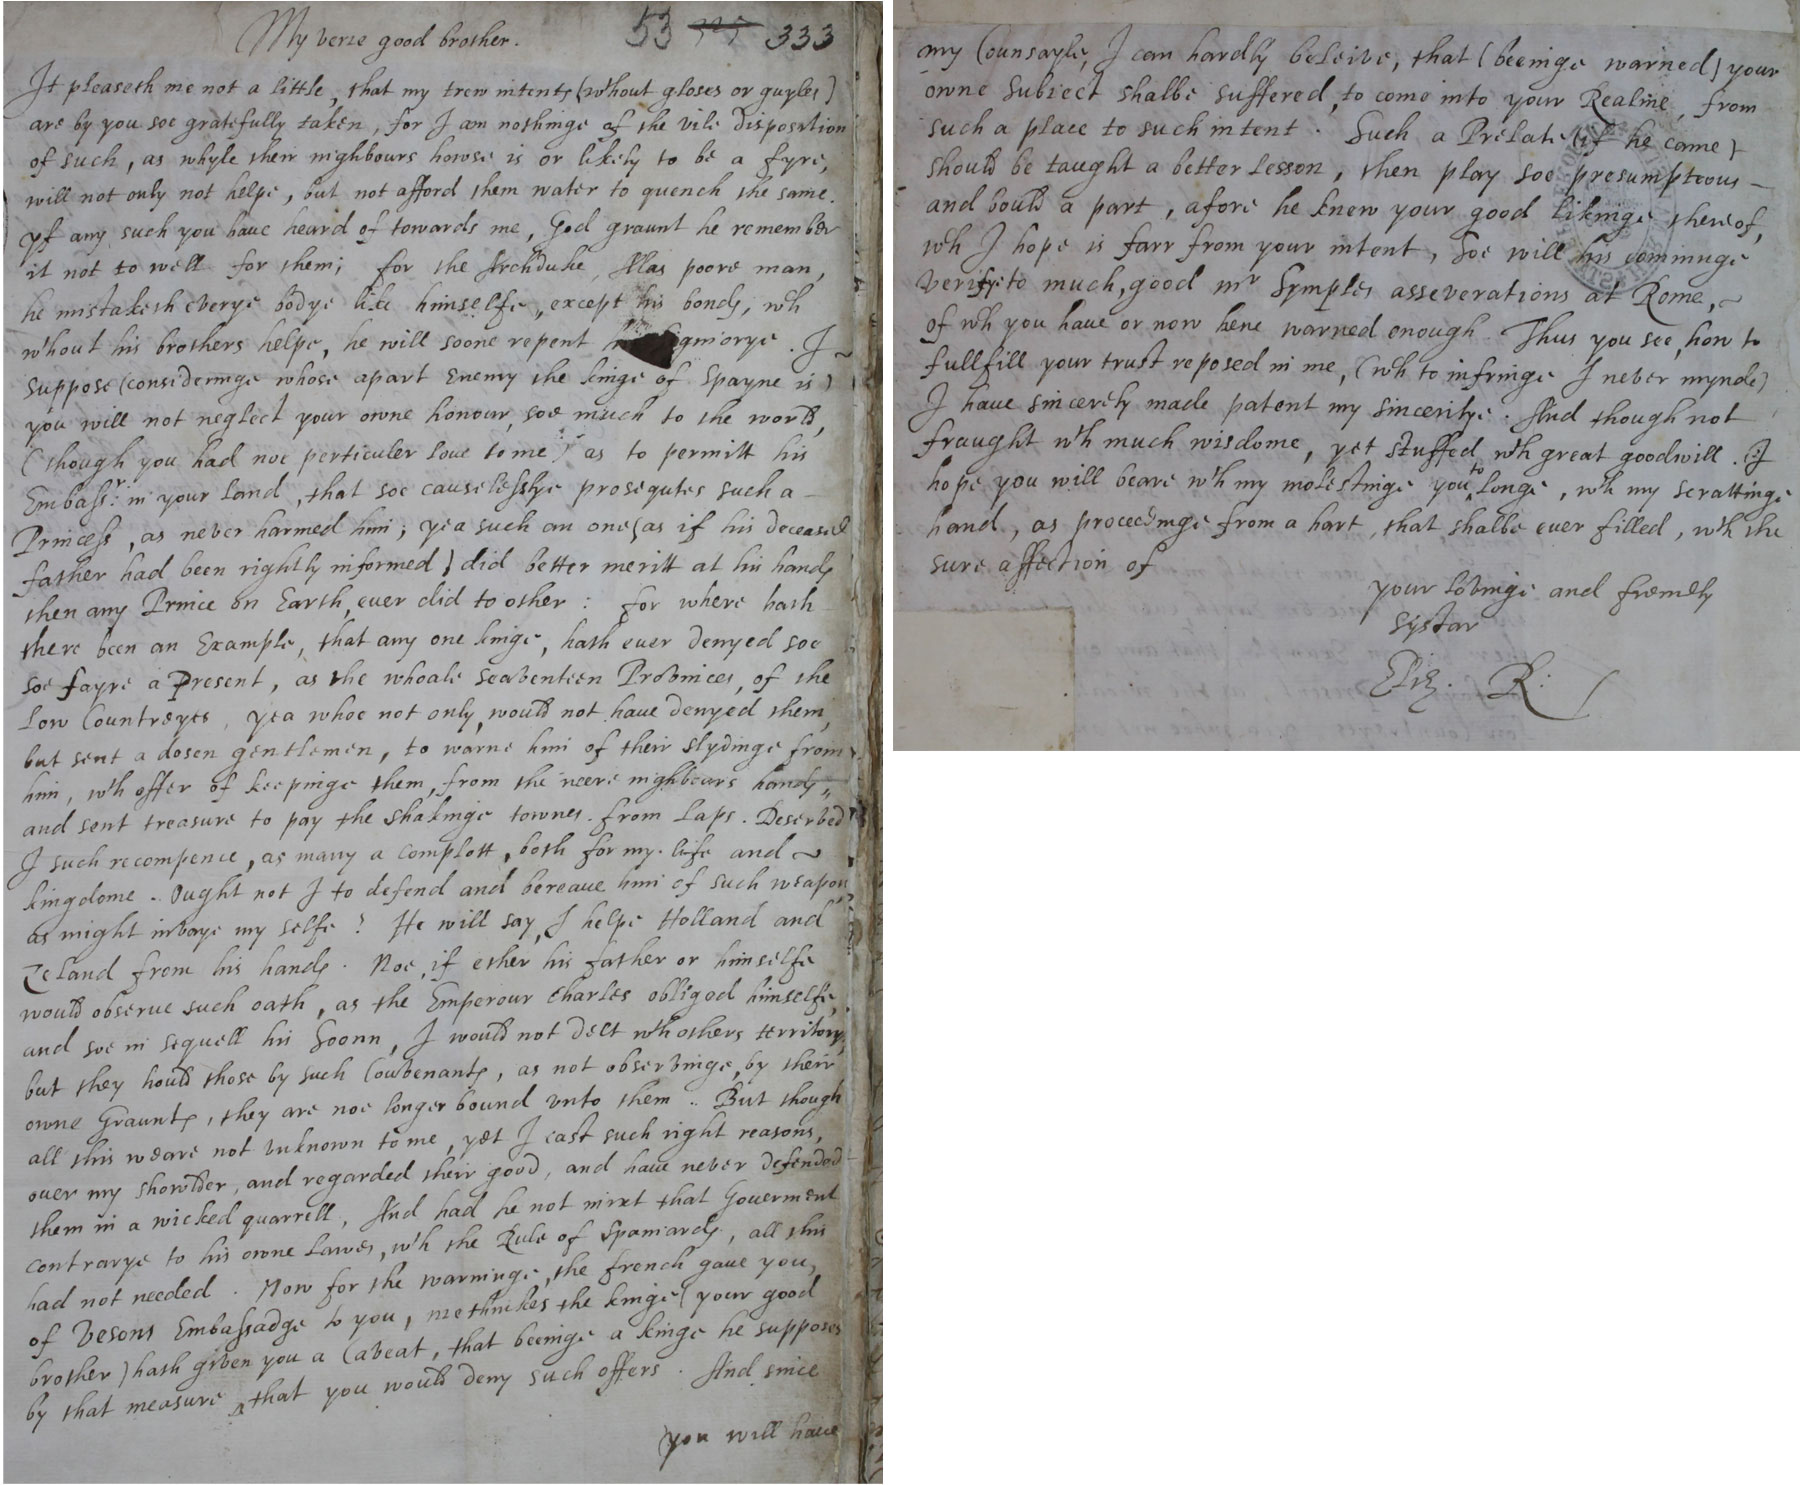 Elizabeth I to James VI, 5 January 1603 (SP 52/69 f.53)